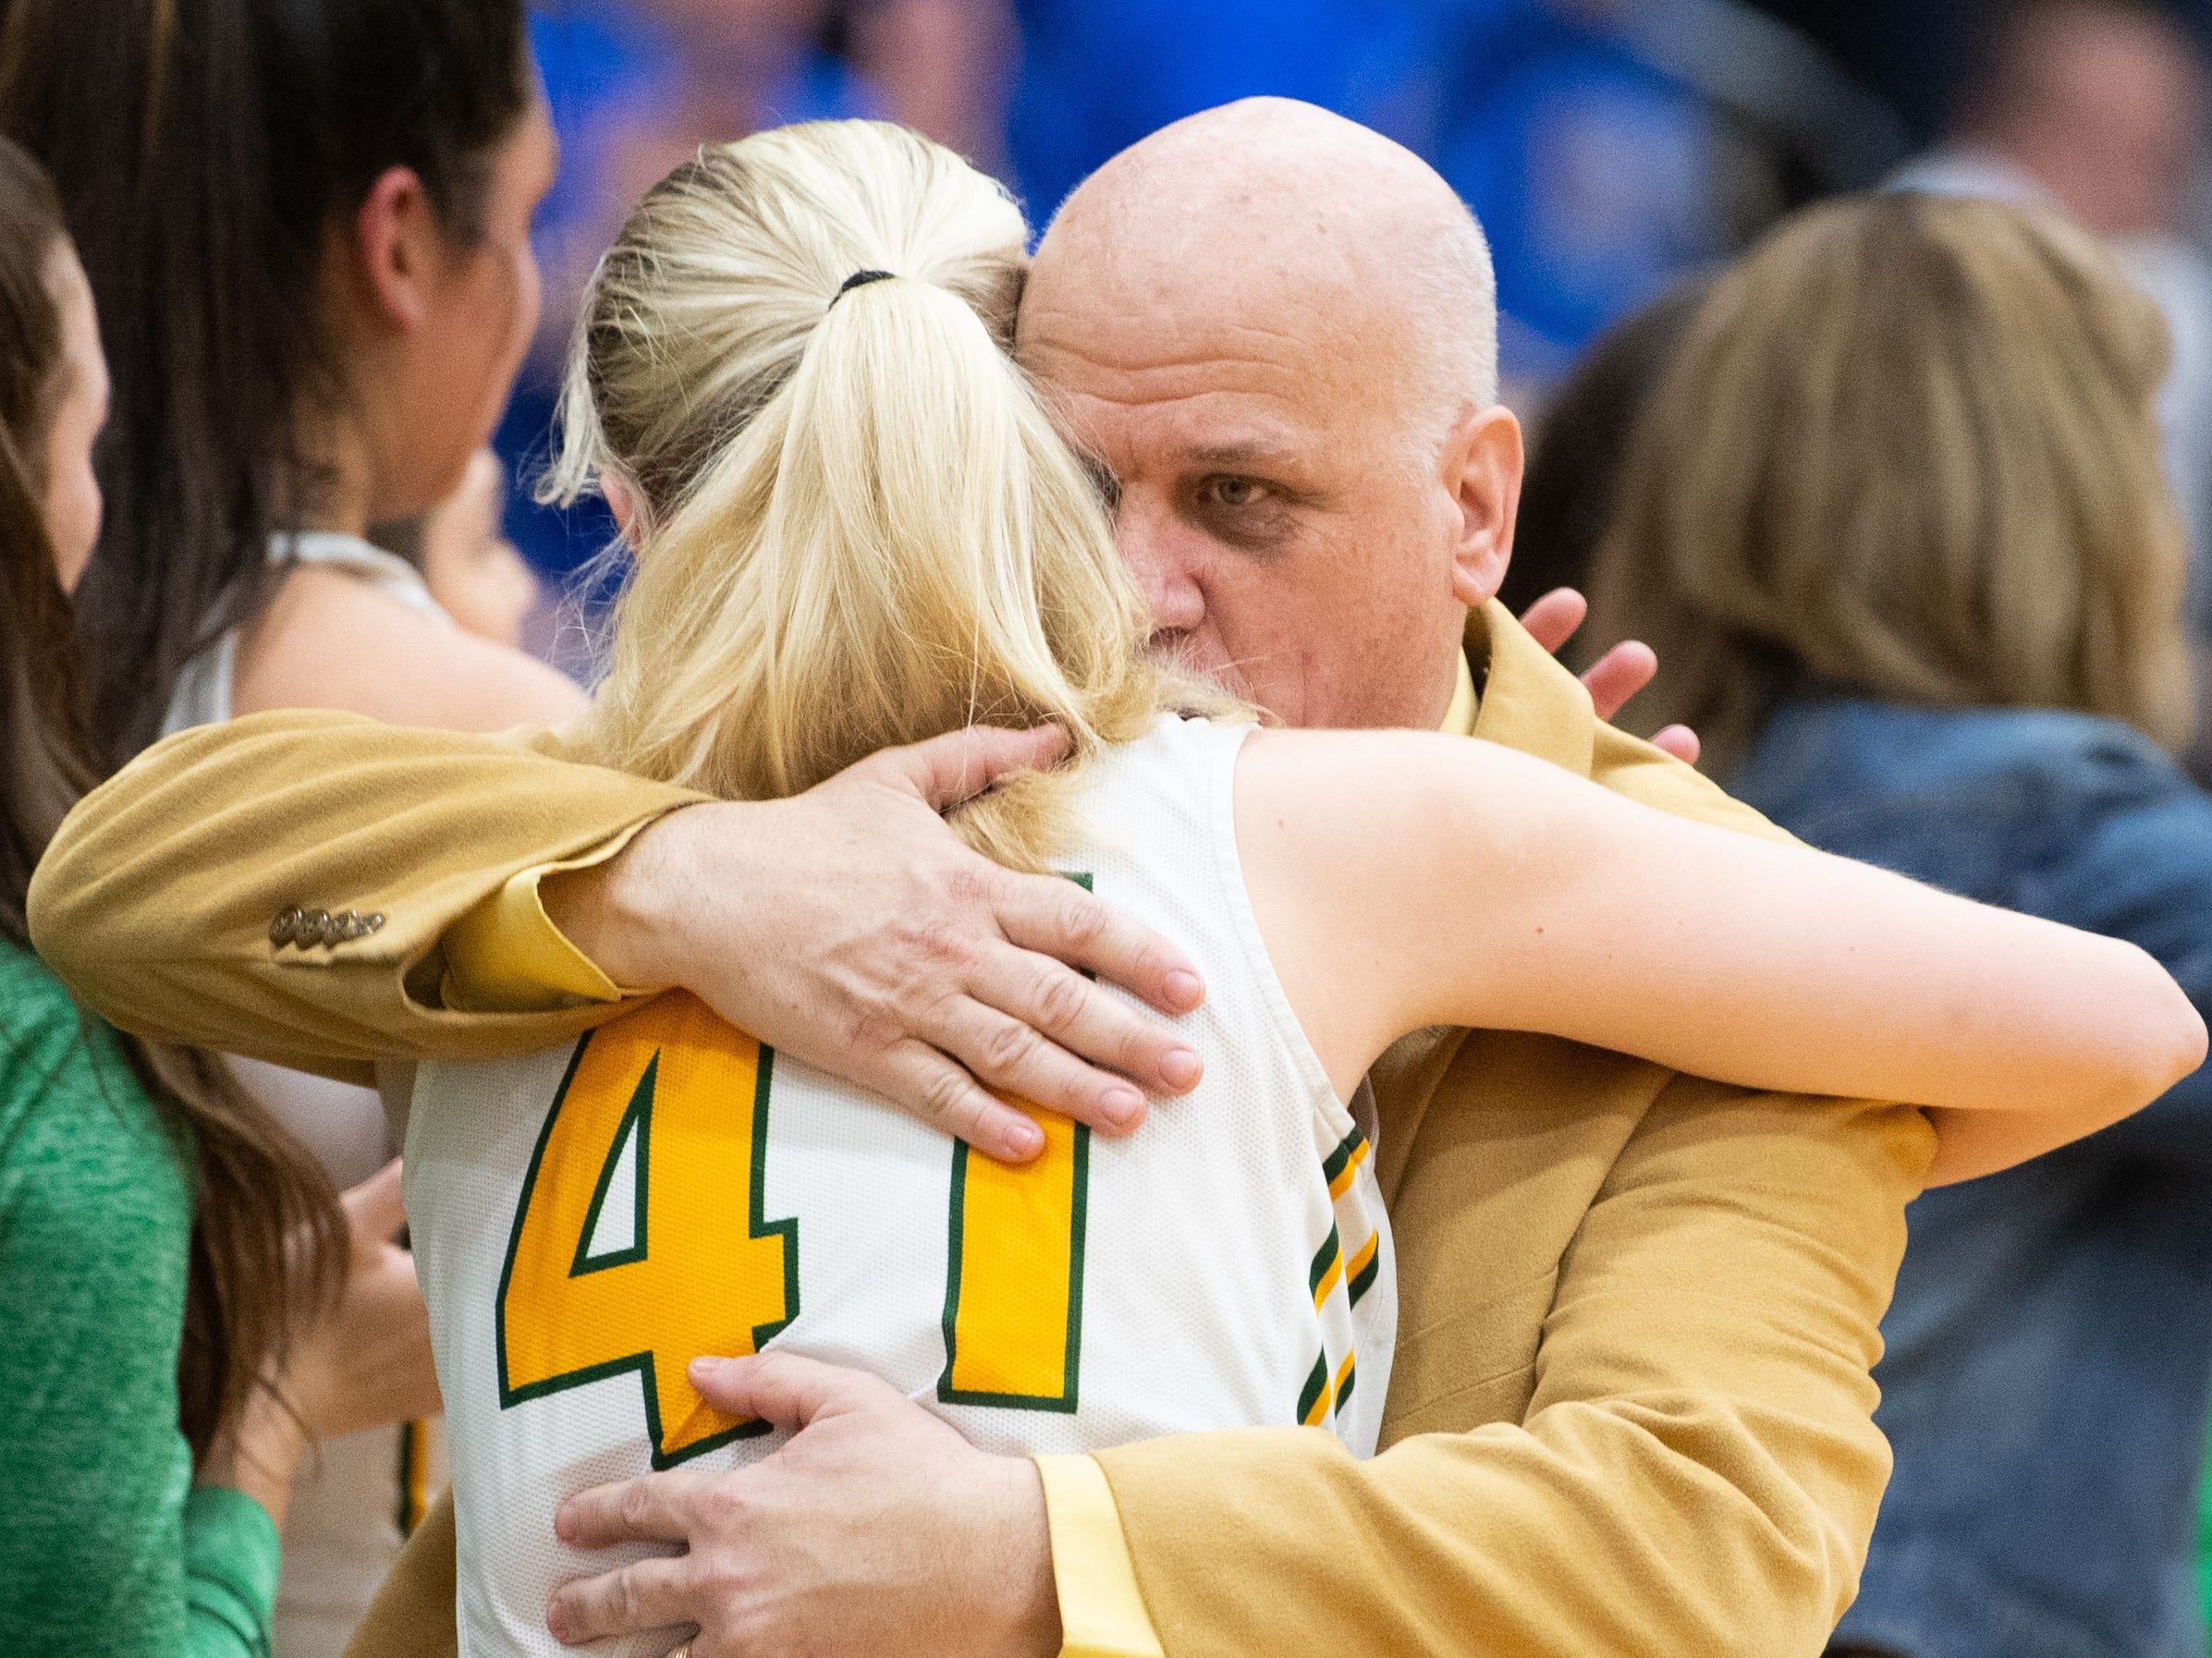 York Catholic Head Coach Kevin Bankos hugs Elena Kondrasuk (41) as the game comes to a close, March 15, 2019 at Mifflin County High School. The Fighting Irish lost to the Lady Blue Devils 53 to 47.